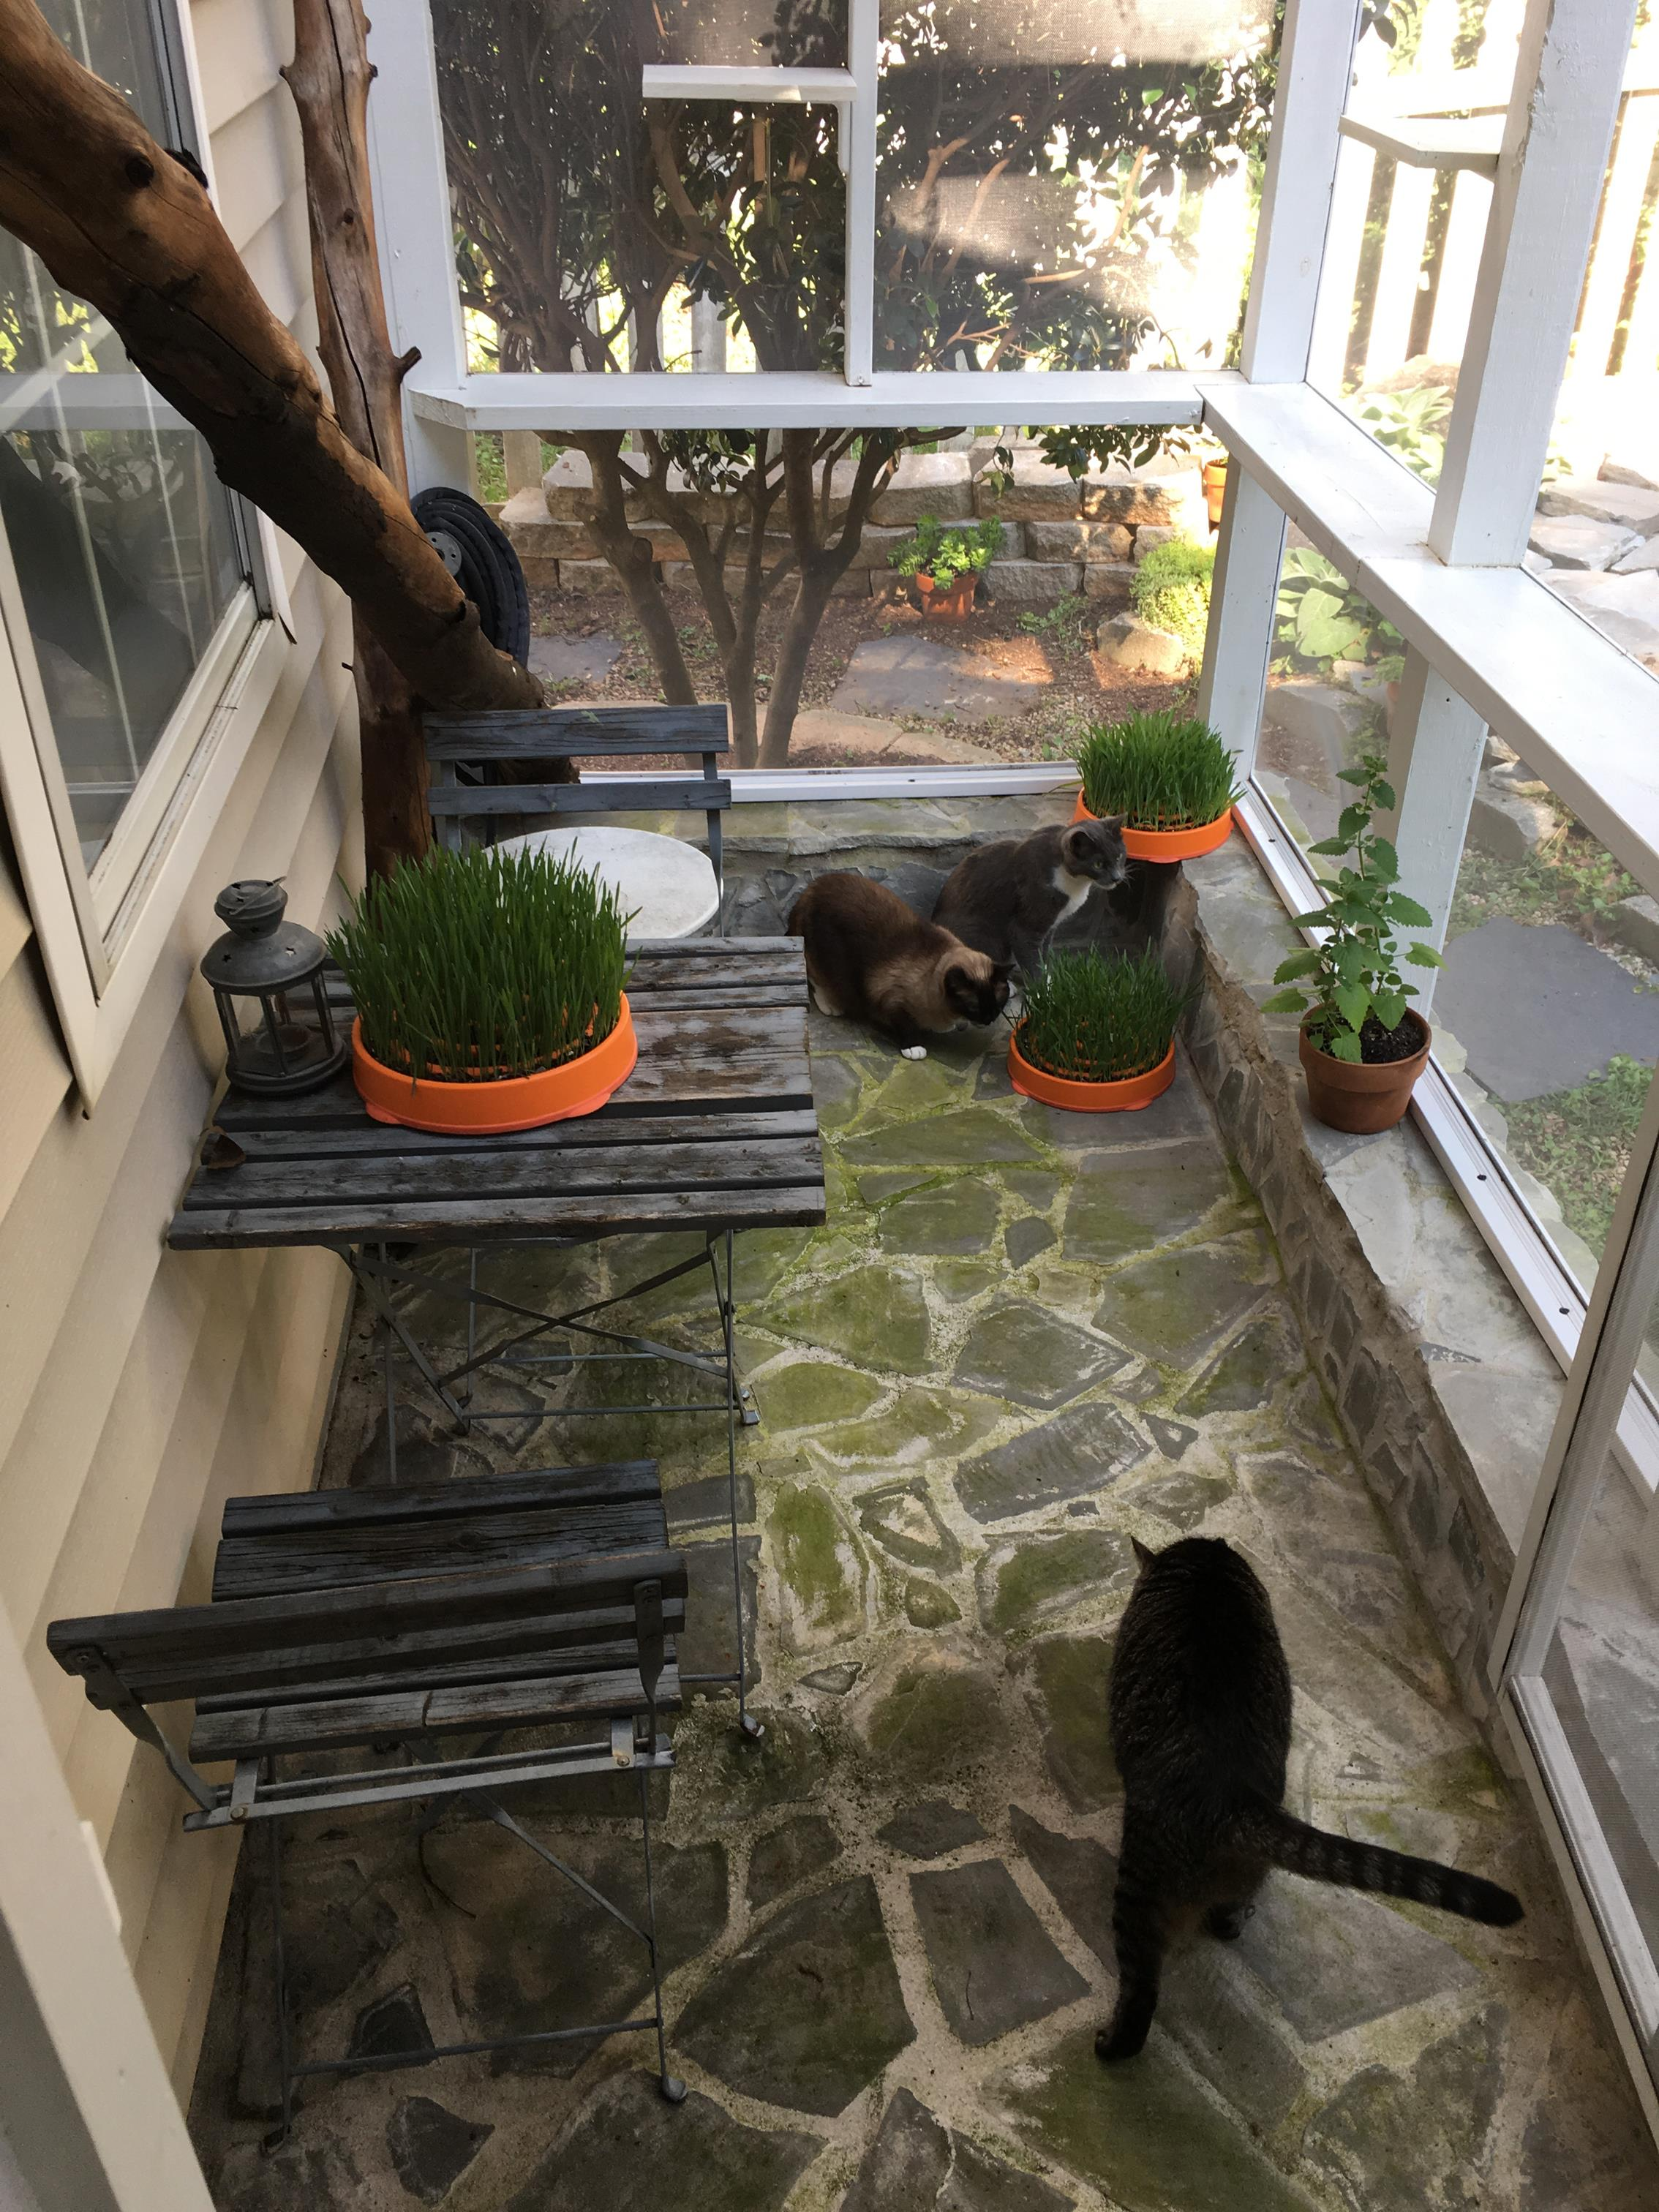 All kinds of feline friendly greens can be planted!